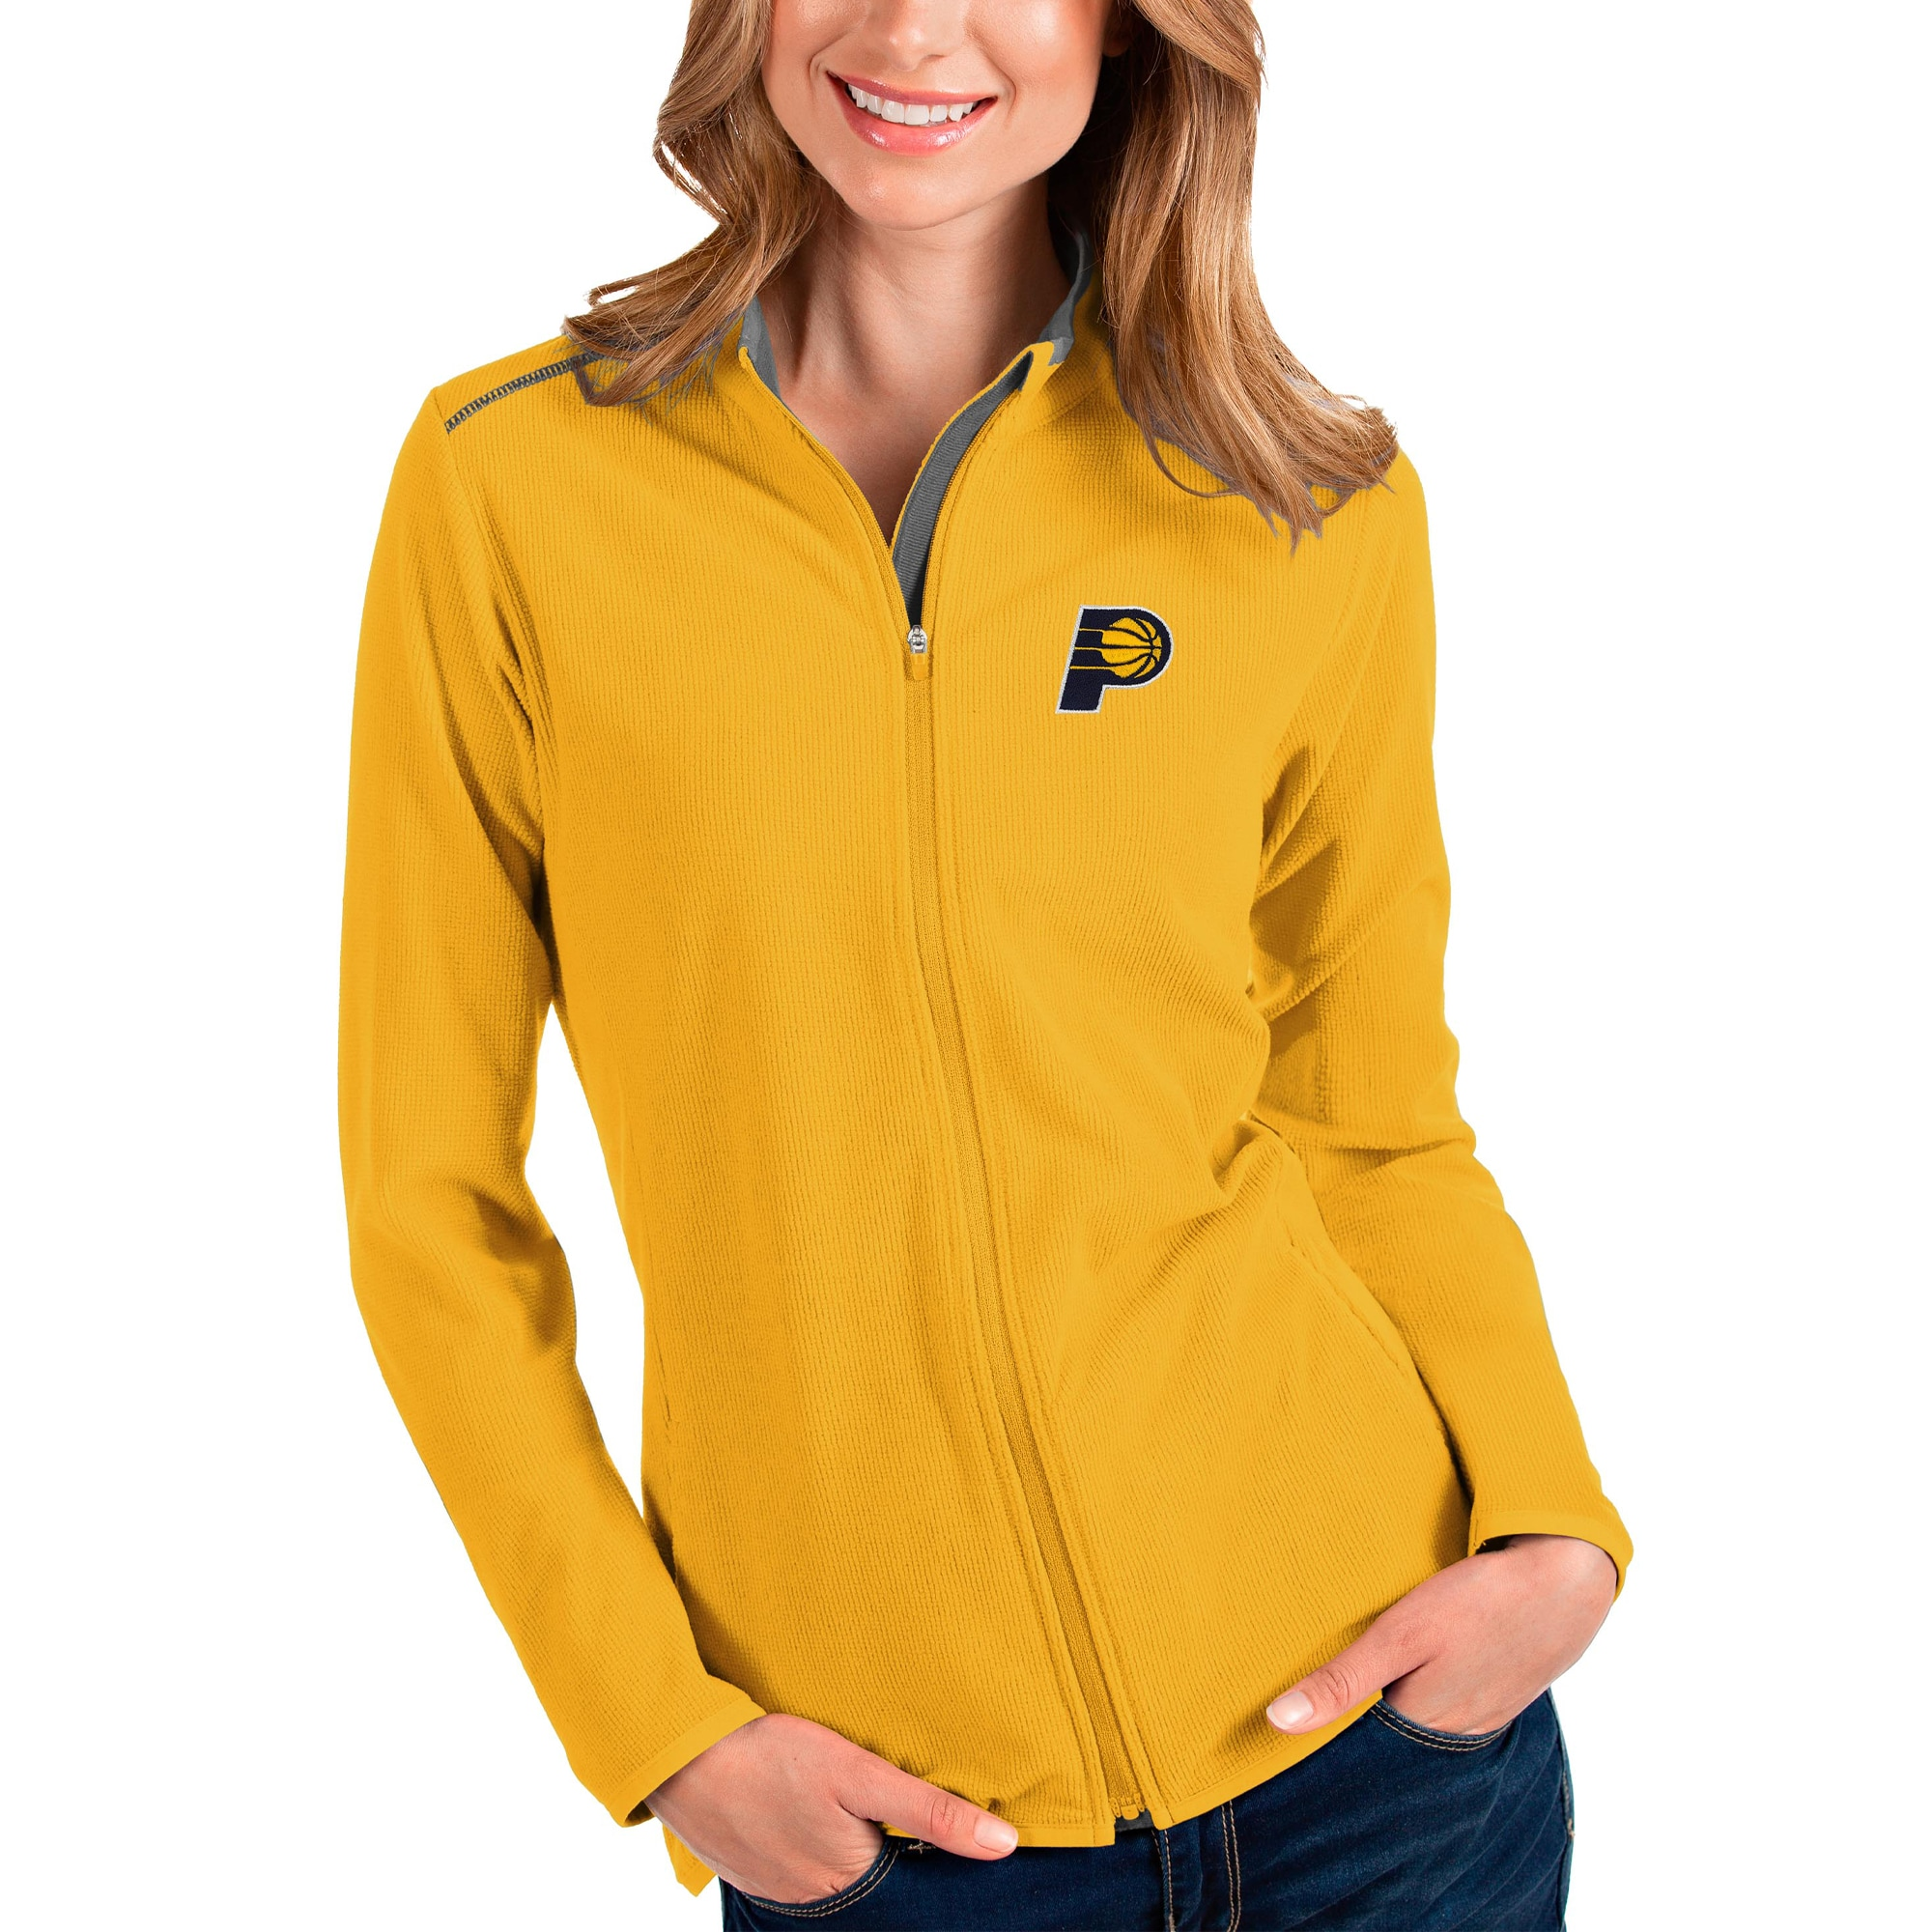 Indiana Pacers Antigua Women's Glacier Full-Zip Jacket - Gold/Gray